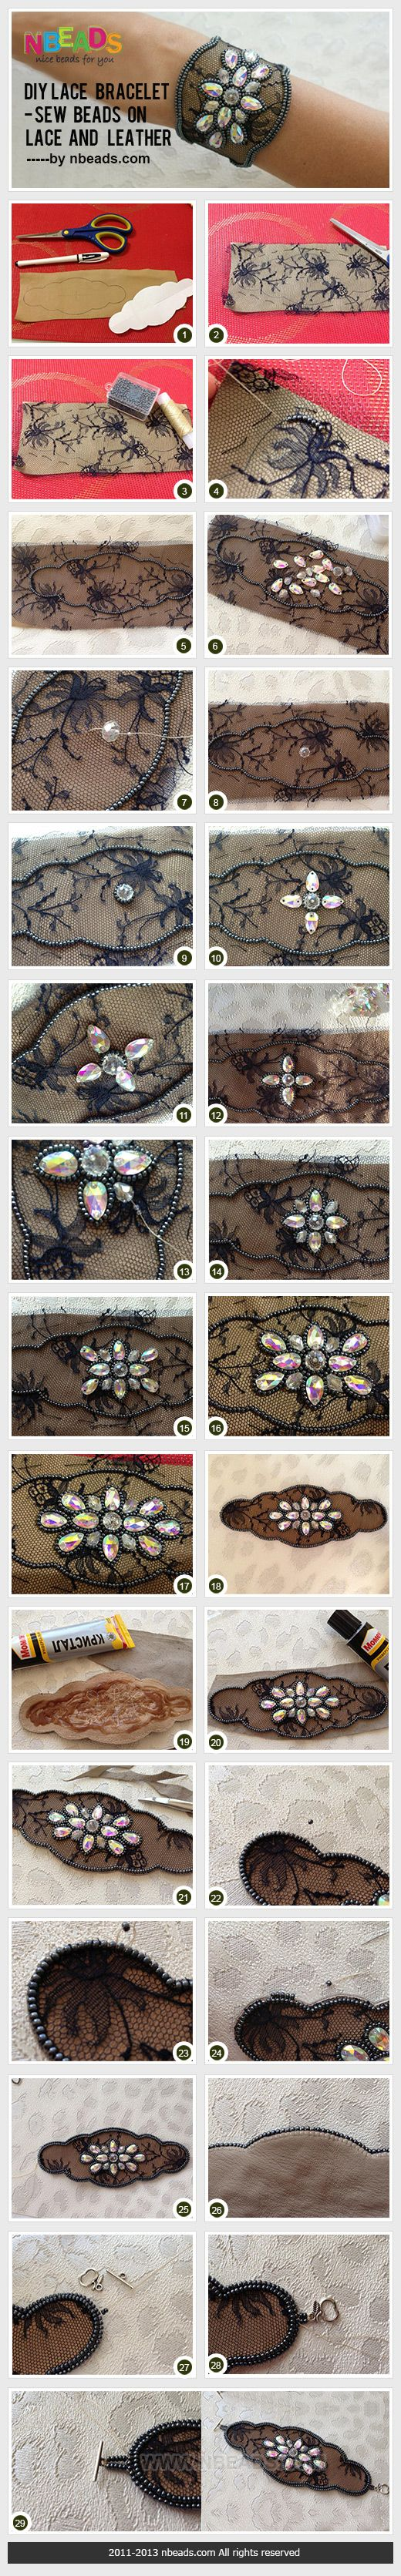 These step-by-step instructions show you just how easy it is to make your own #LeatherAndLace jewelry designs! I LOVE it! - Allie FusionBeads.com #FusionBeadsTakeover